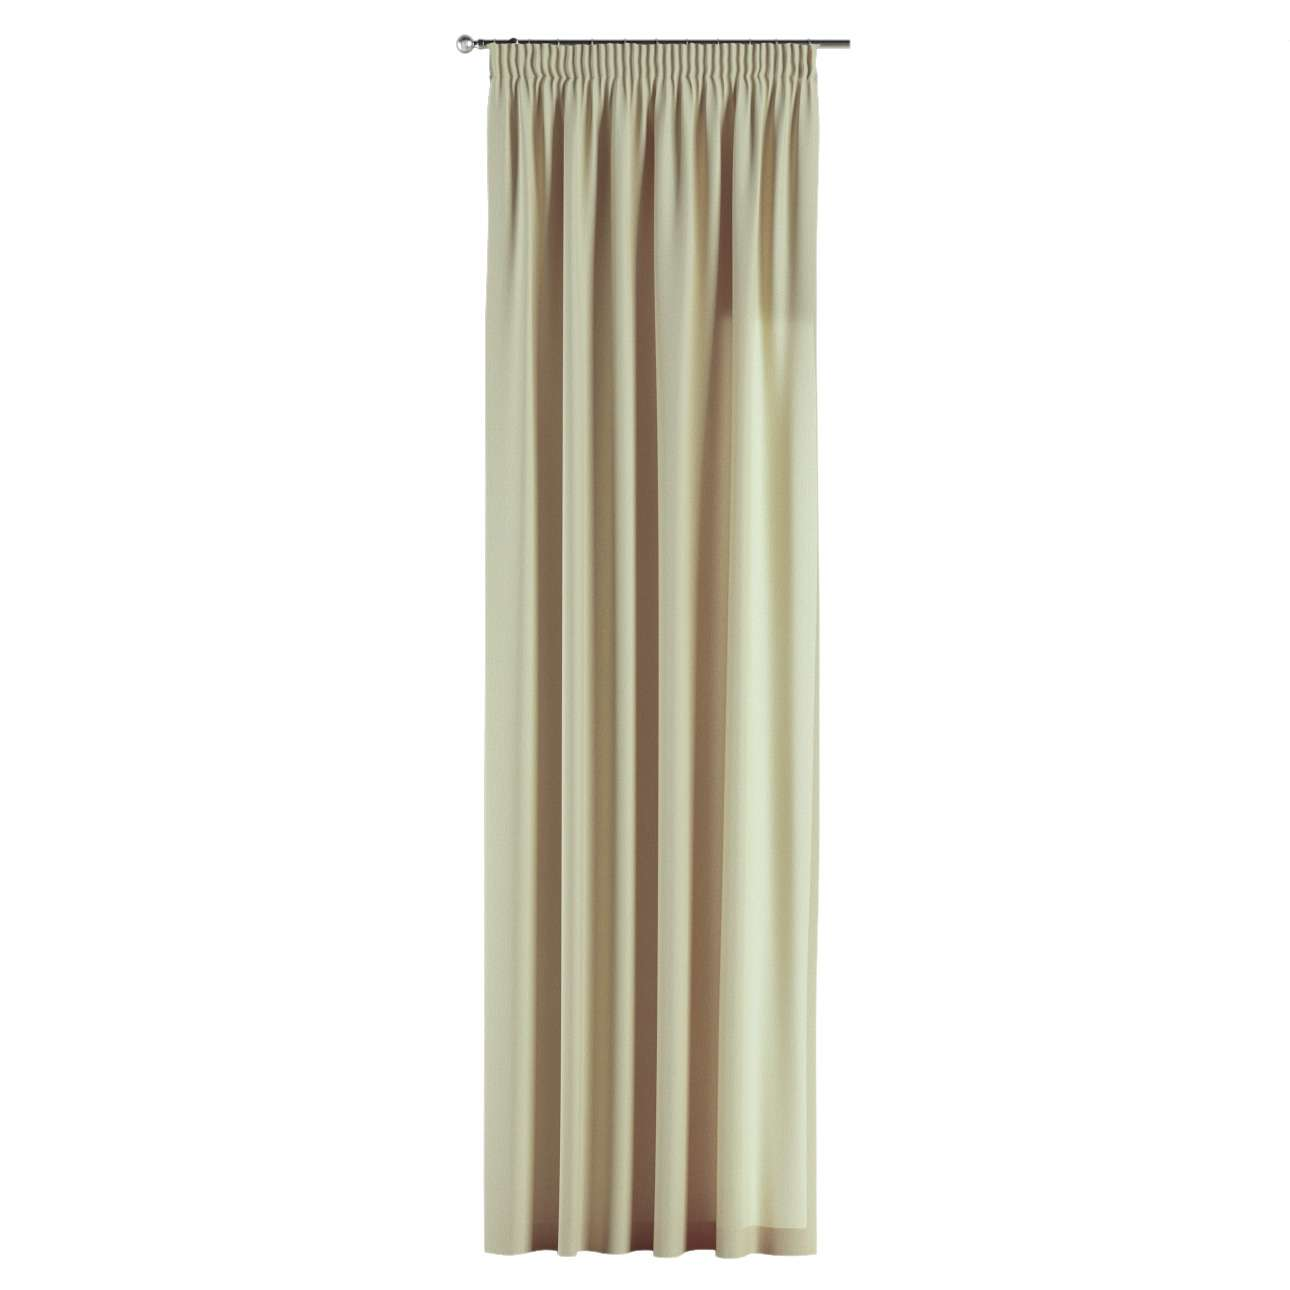 Pencil pleat curtains 130 × 260 cm (51 × 102 inch) in collection Chenille, fabric: 702-22